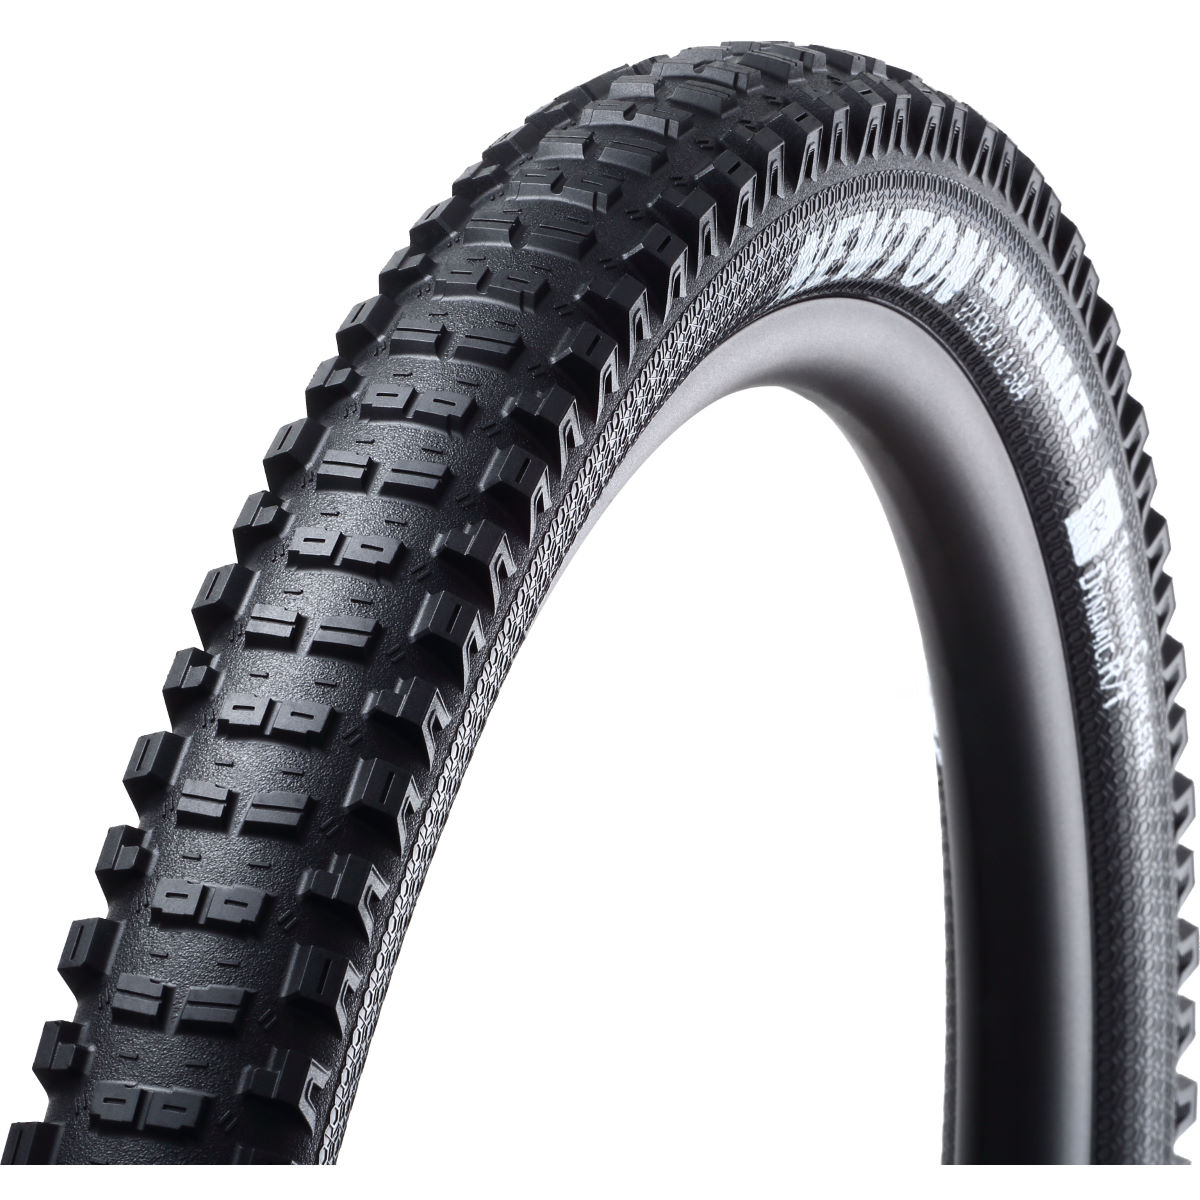 Goodyear Newton DH Ultimate Tubeless MTB Tyre - Cubiertas